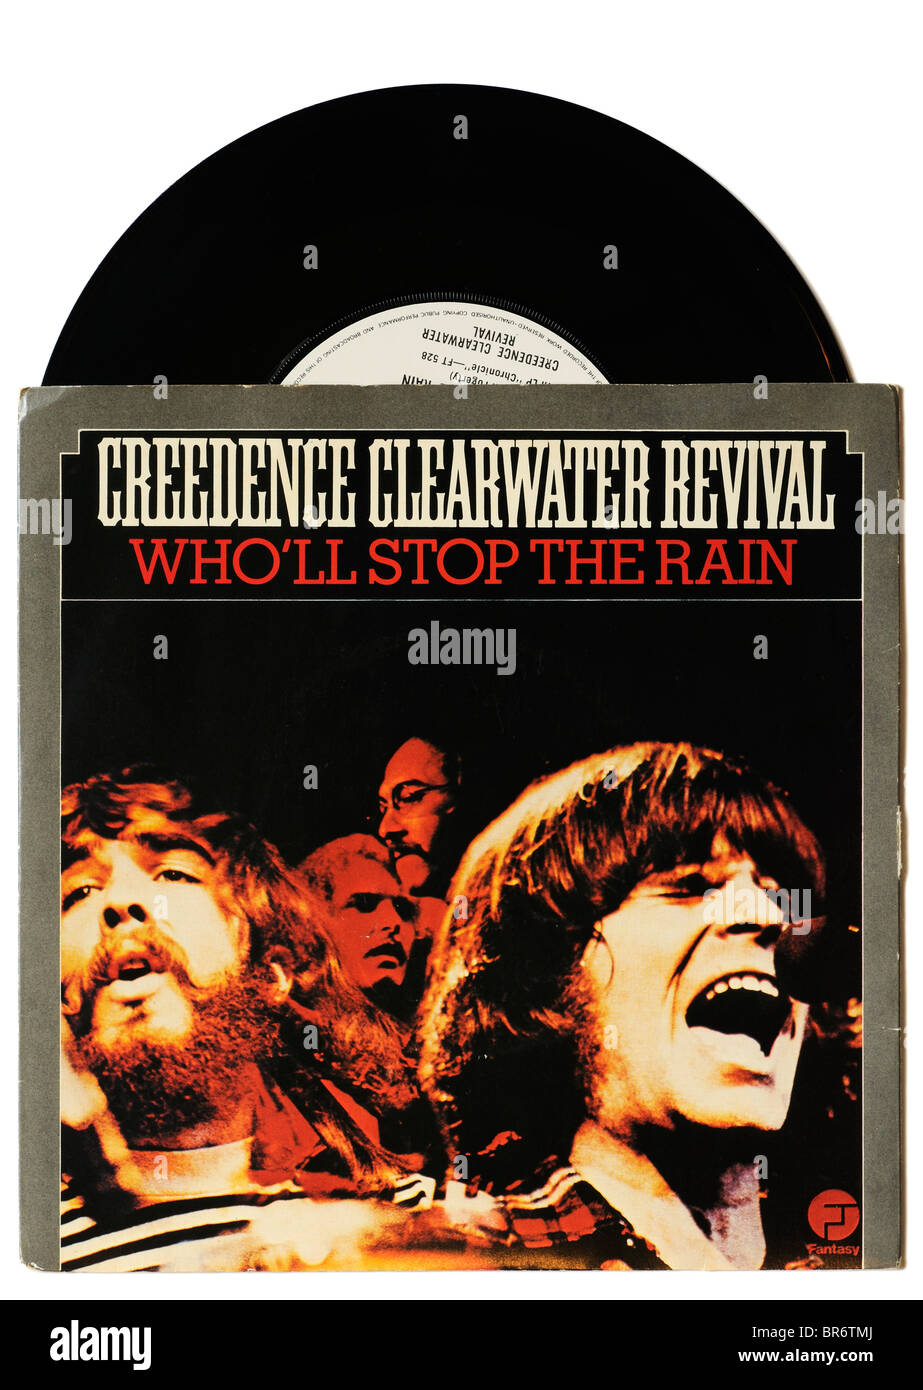 Creedence Clearwater Revival Who'll Stop the Rain single - Stock Image